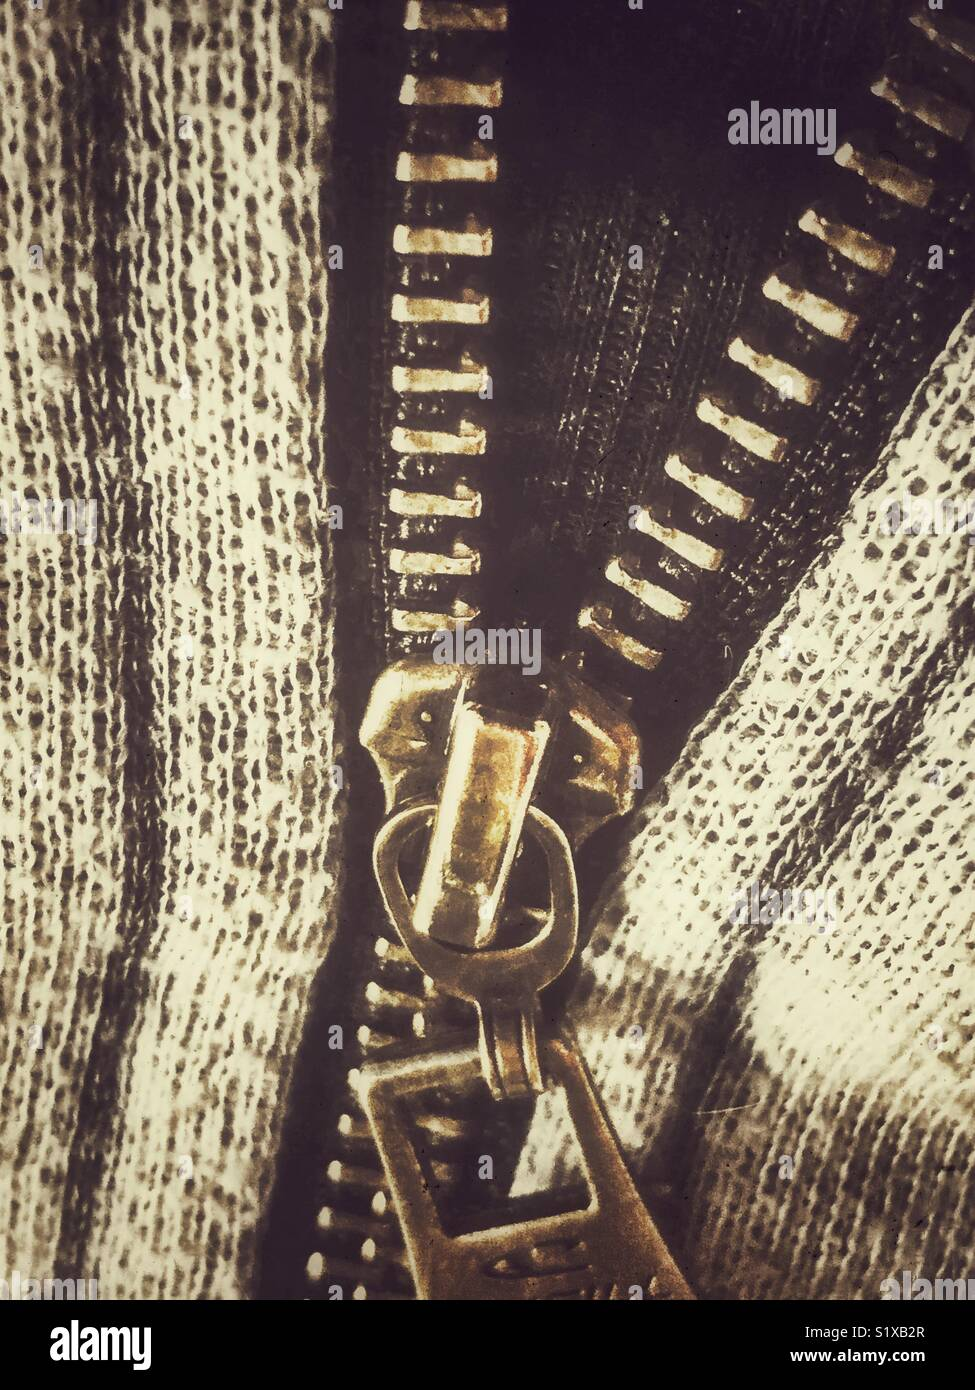 Closeup of brass coloured zipper partially unzipped with grey and black fabric - Stock Image